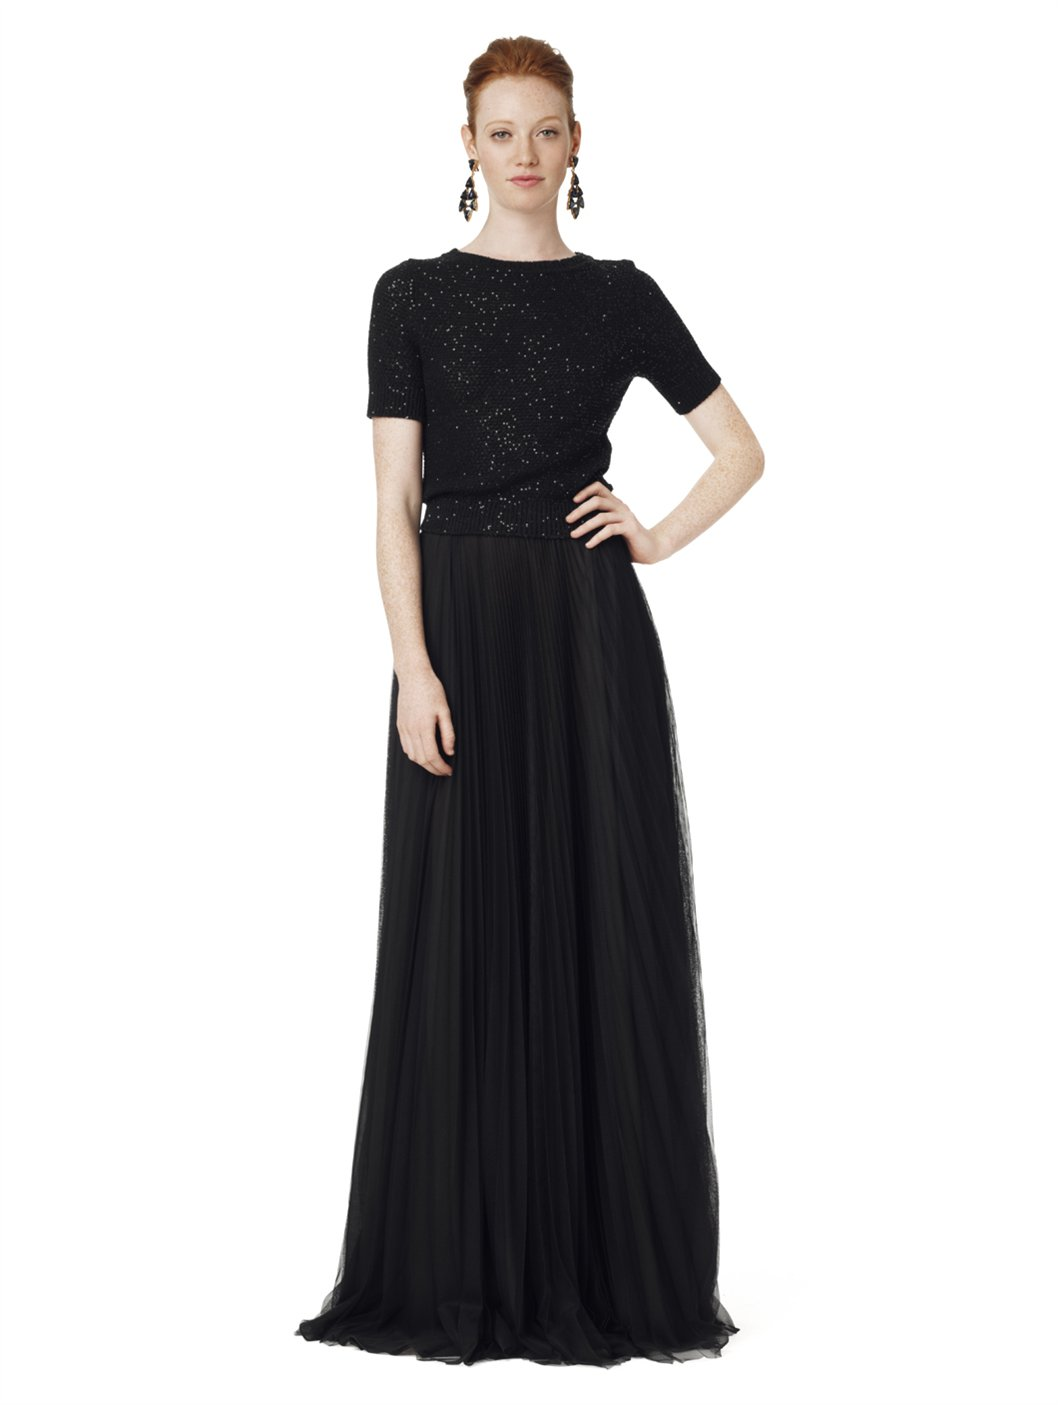 Images of Black Formal Skirt Floor Length - The Fashions Of Paradise